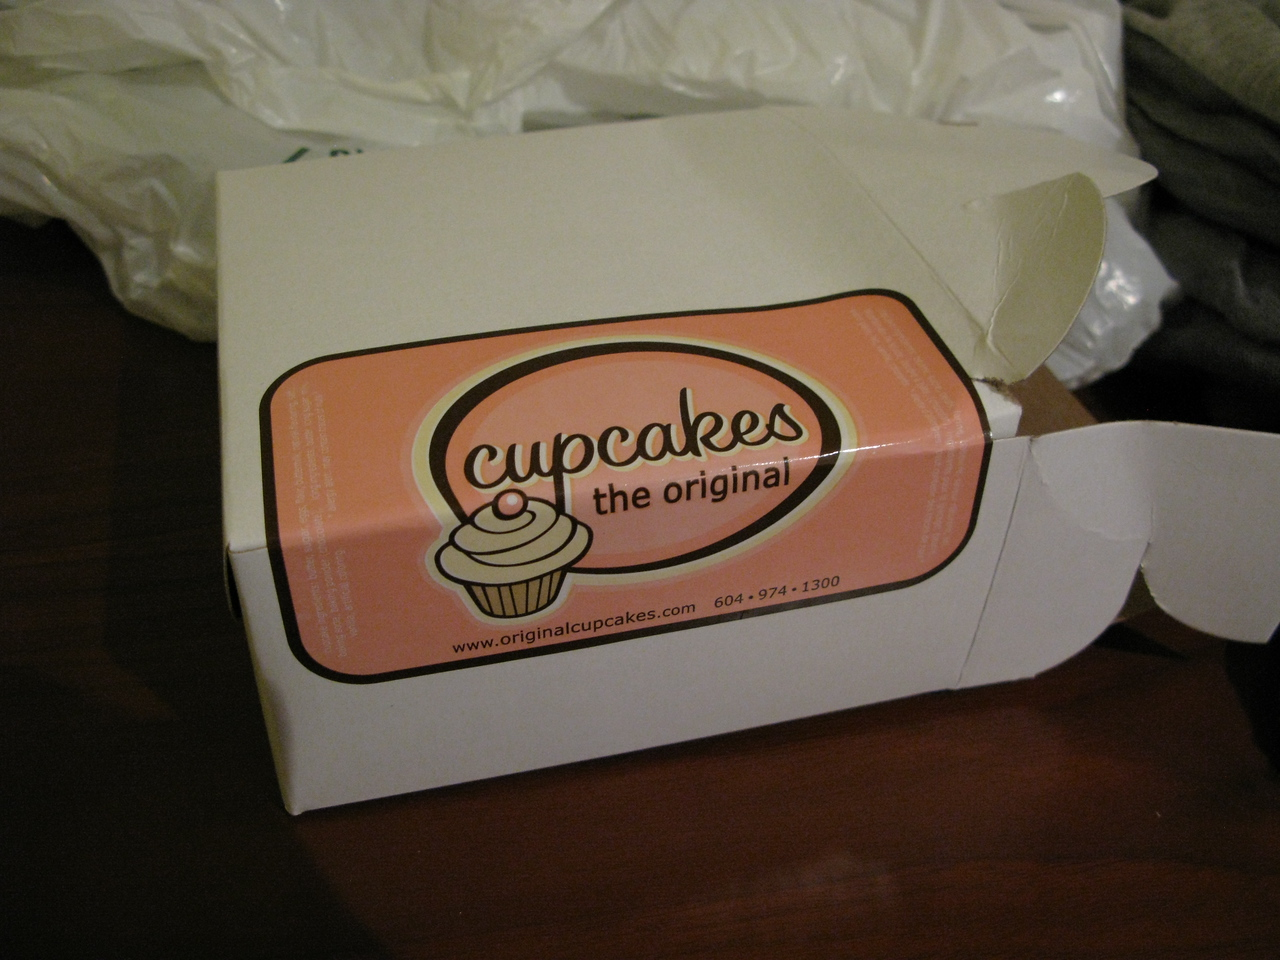 The cupcakes were the 'best' desert!